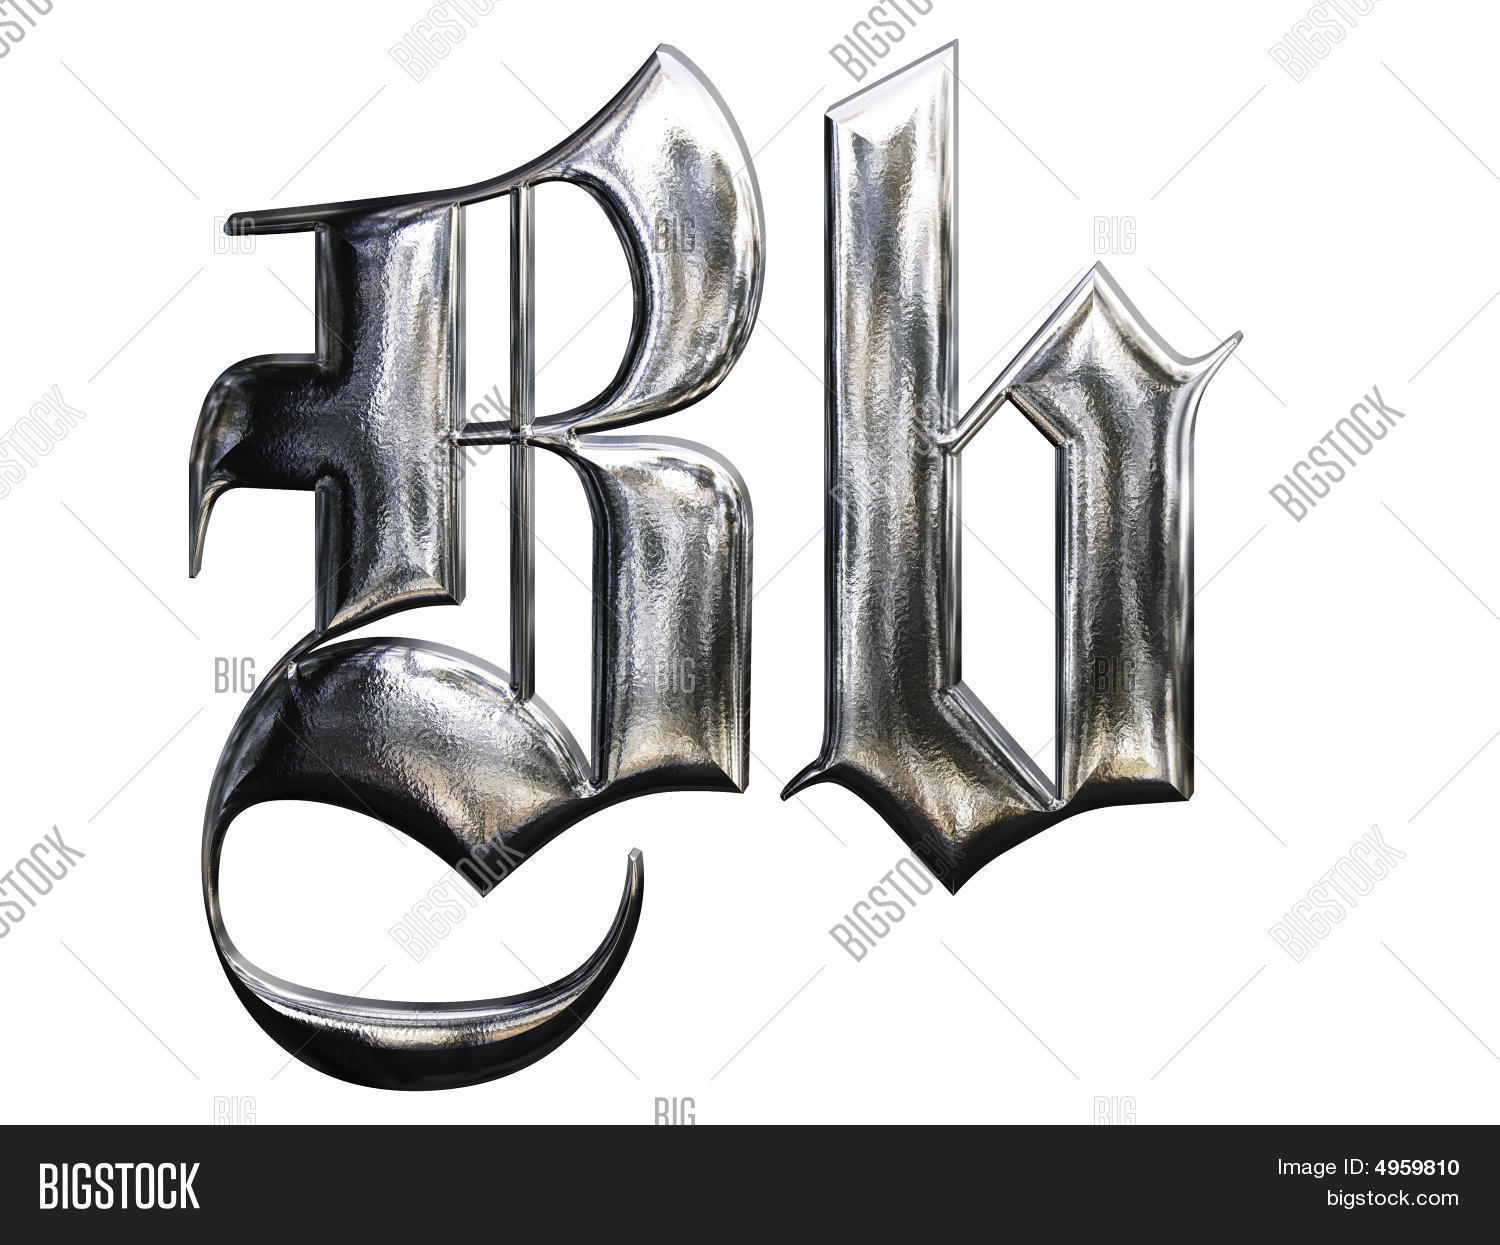 Metallic Patterned Image & Photo (Free Trial) | Bigstock